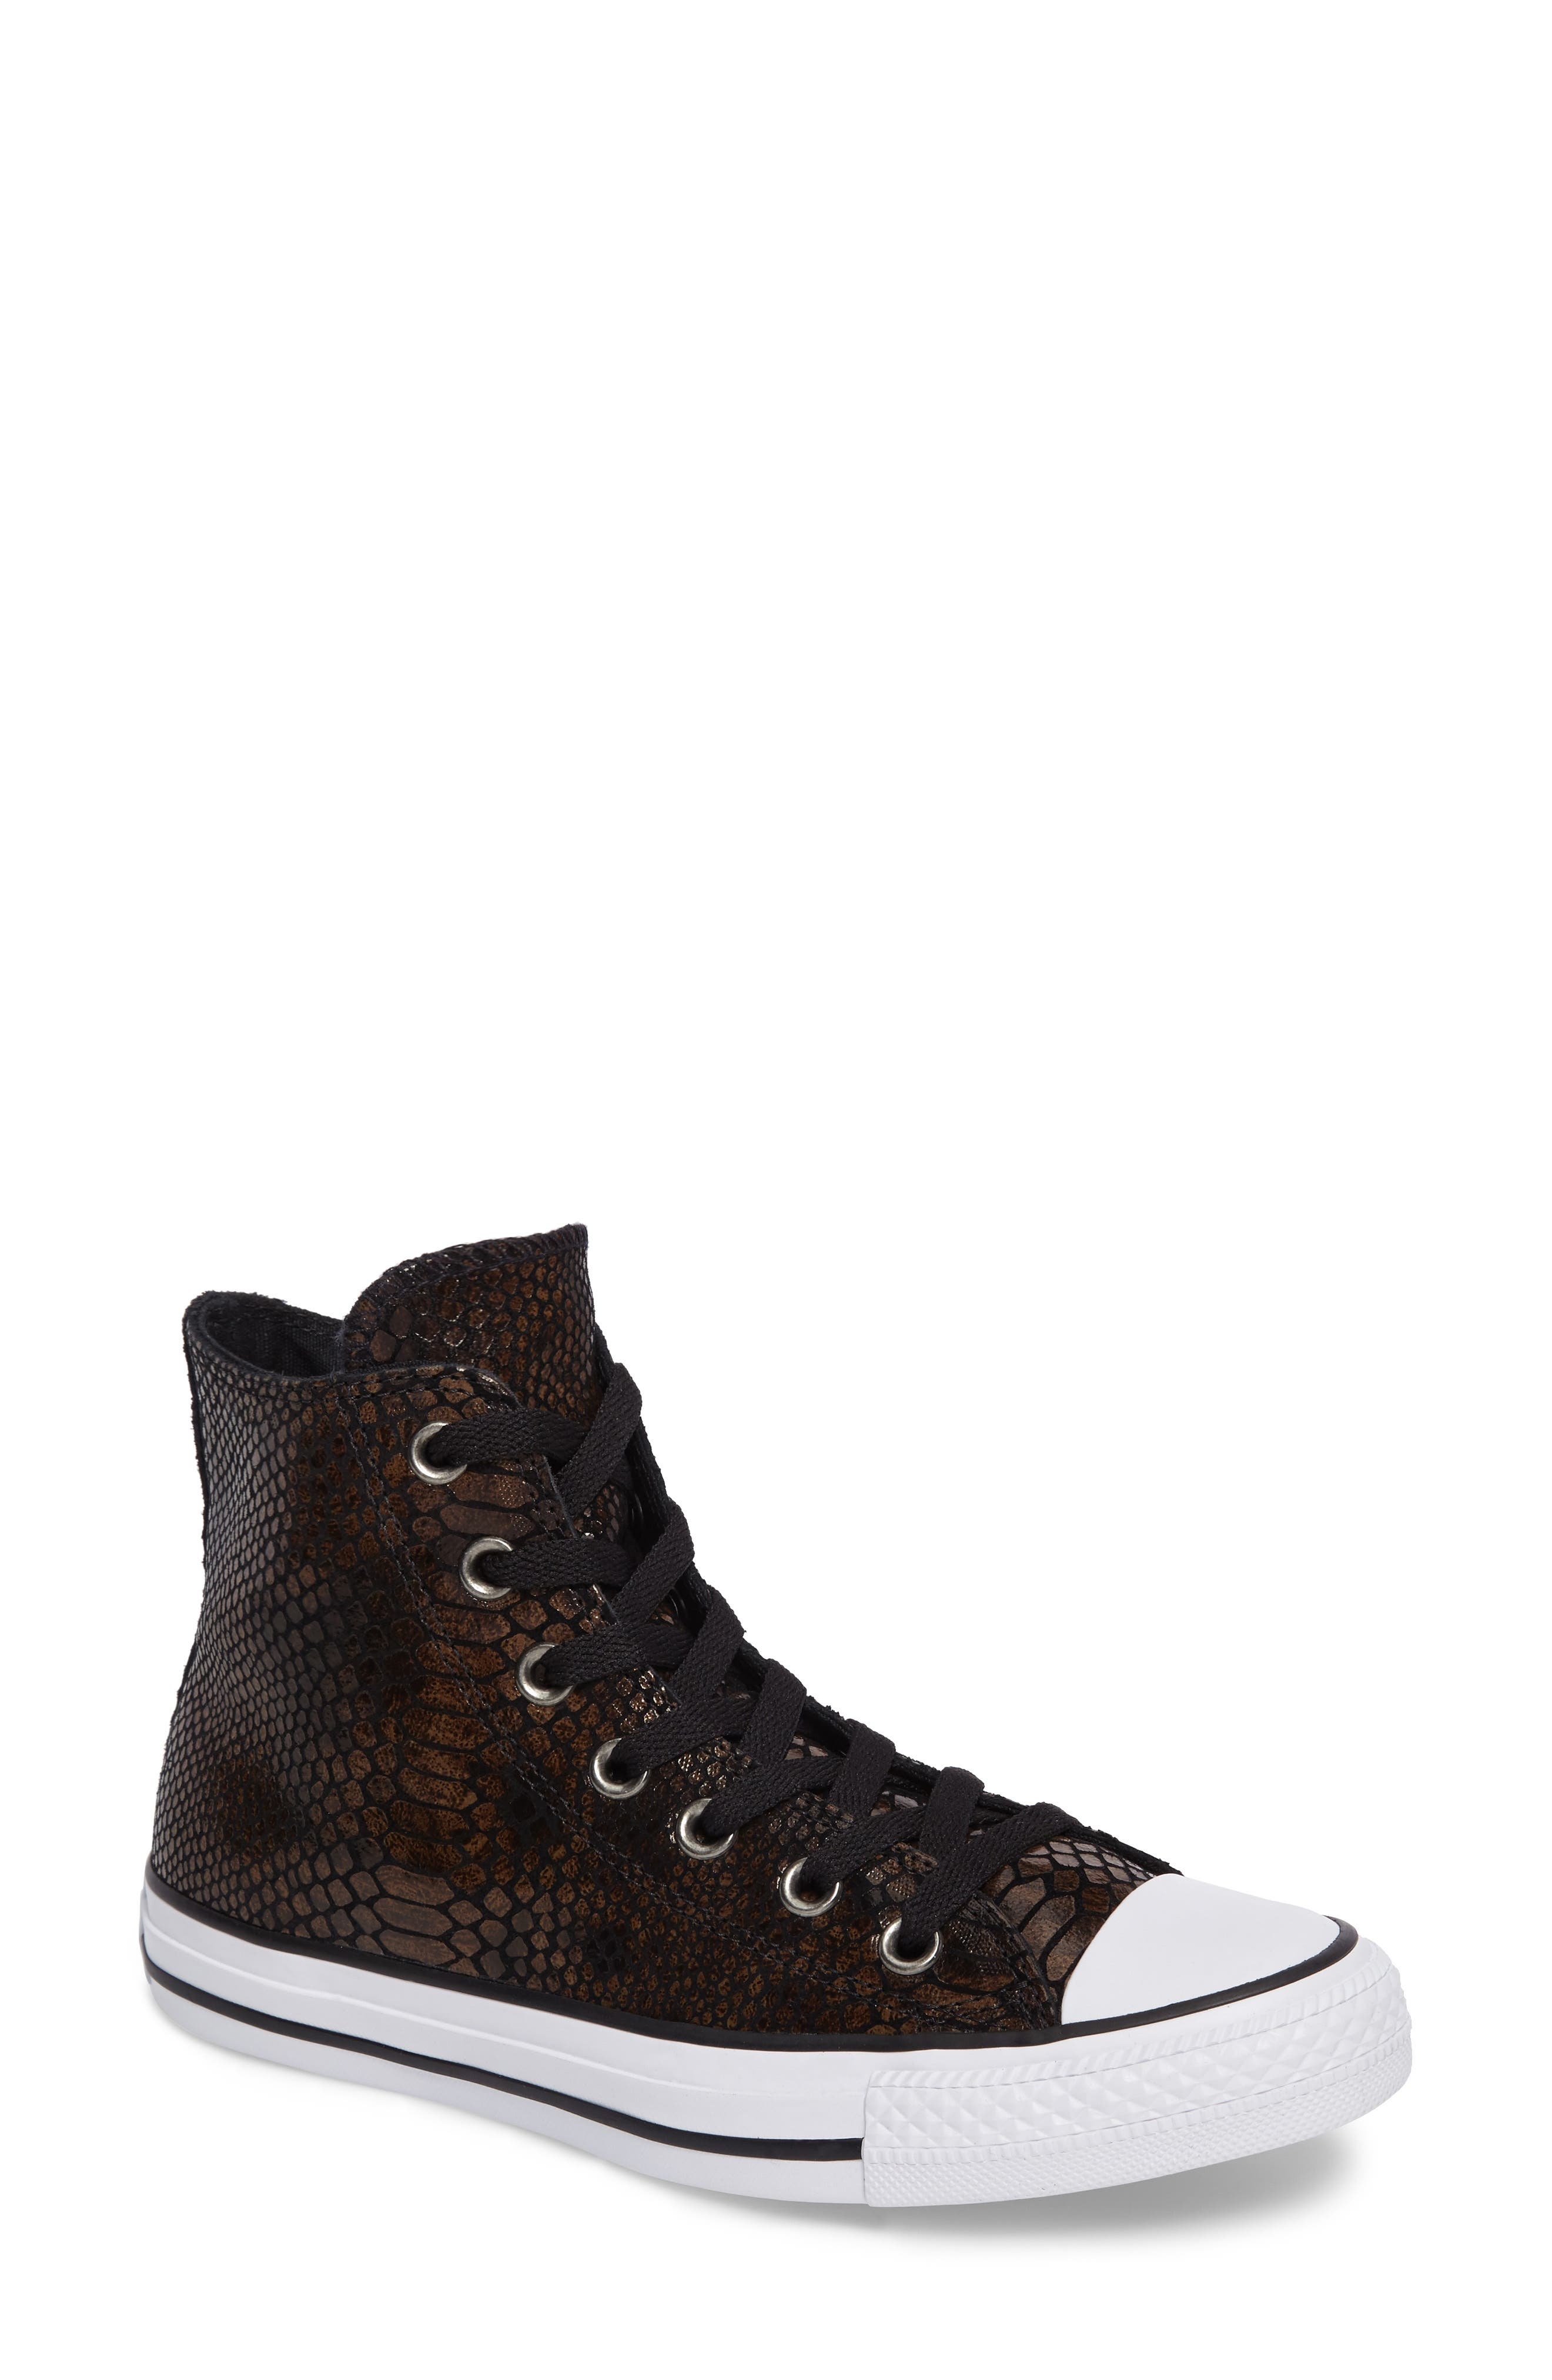 Chuck Taylor<sup>®</sup> All Star<sup>®</sup> Snake Embossed High Top Sneaker,                         Main,                         color, 200